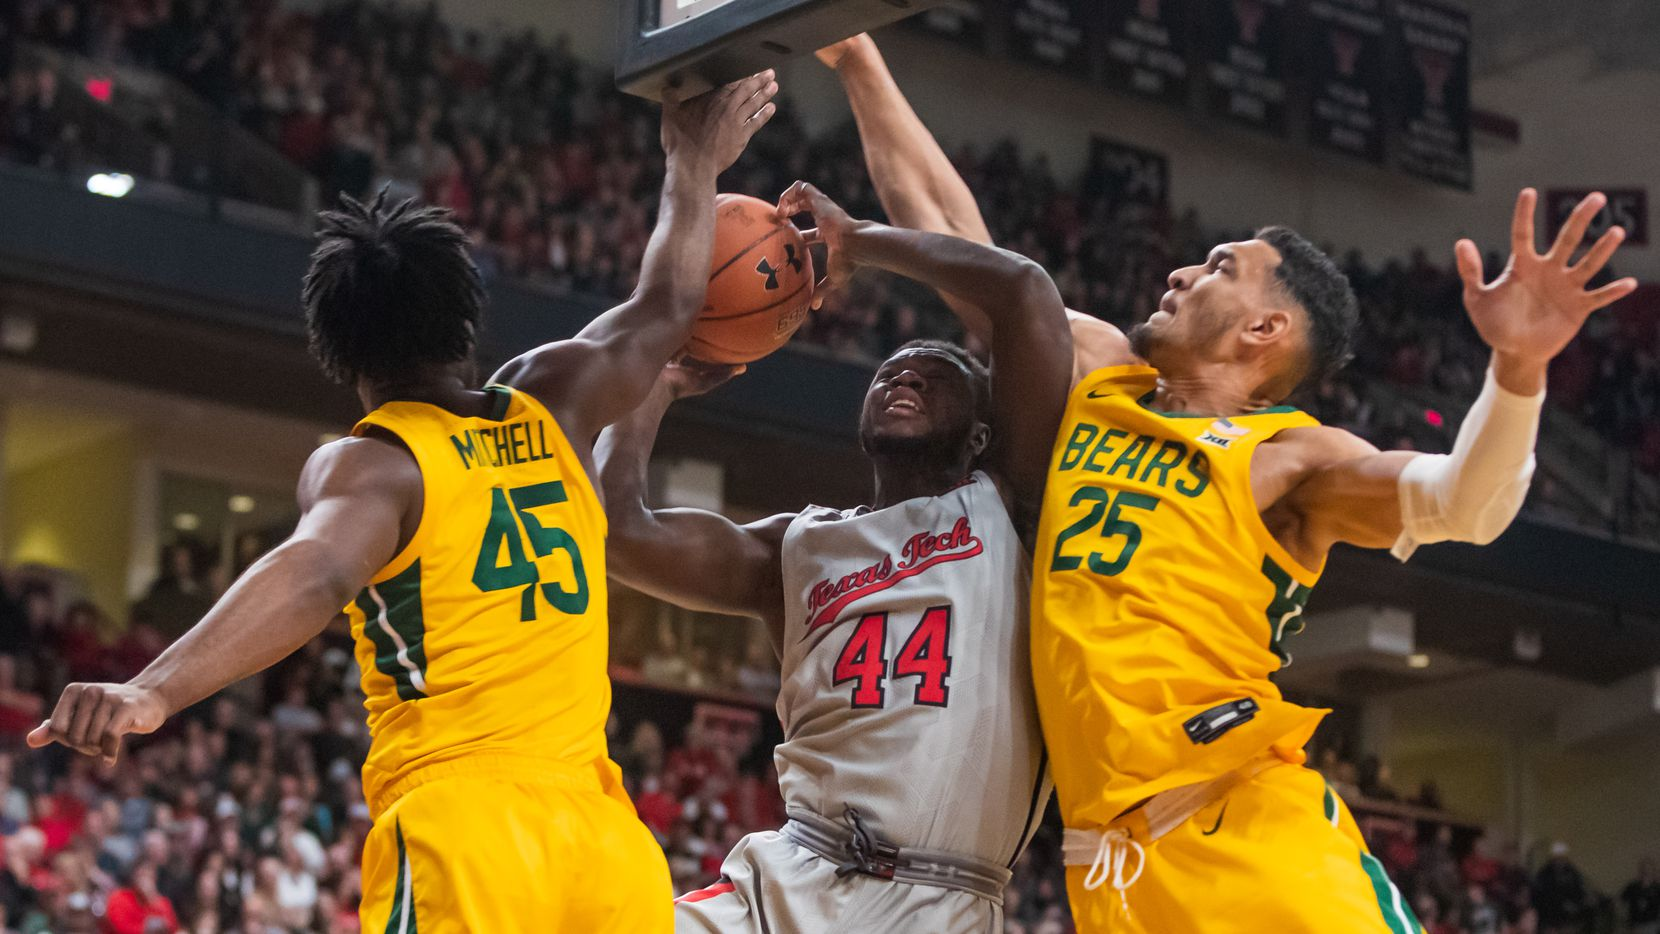 LUBBOCK, TEXAS - JANUARY 07: Guard Chris Clarke #44 of the Texas Tech Red Raiders is fouled by forward Tristan Clark #25 of the Baylor Bears during the first half of the college basketball game on January 07, 2020 at United Supermarkets Arena in Lubbock, Texas.